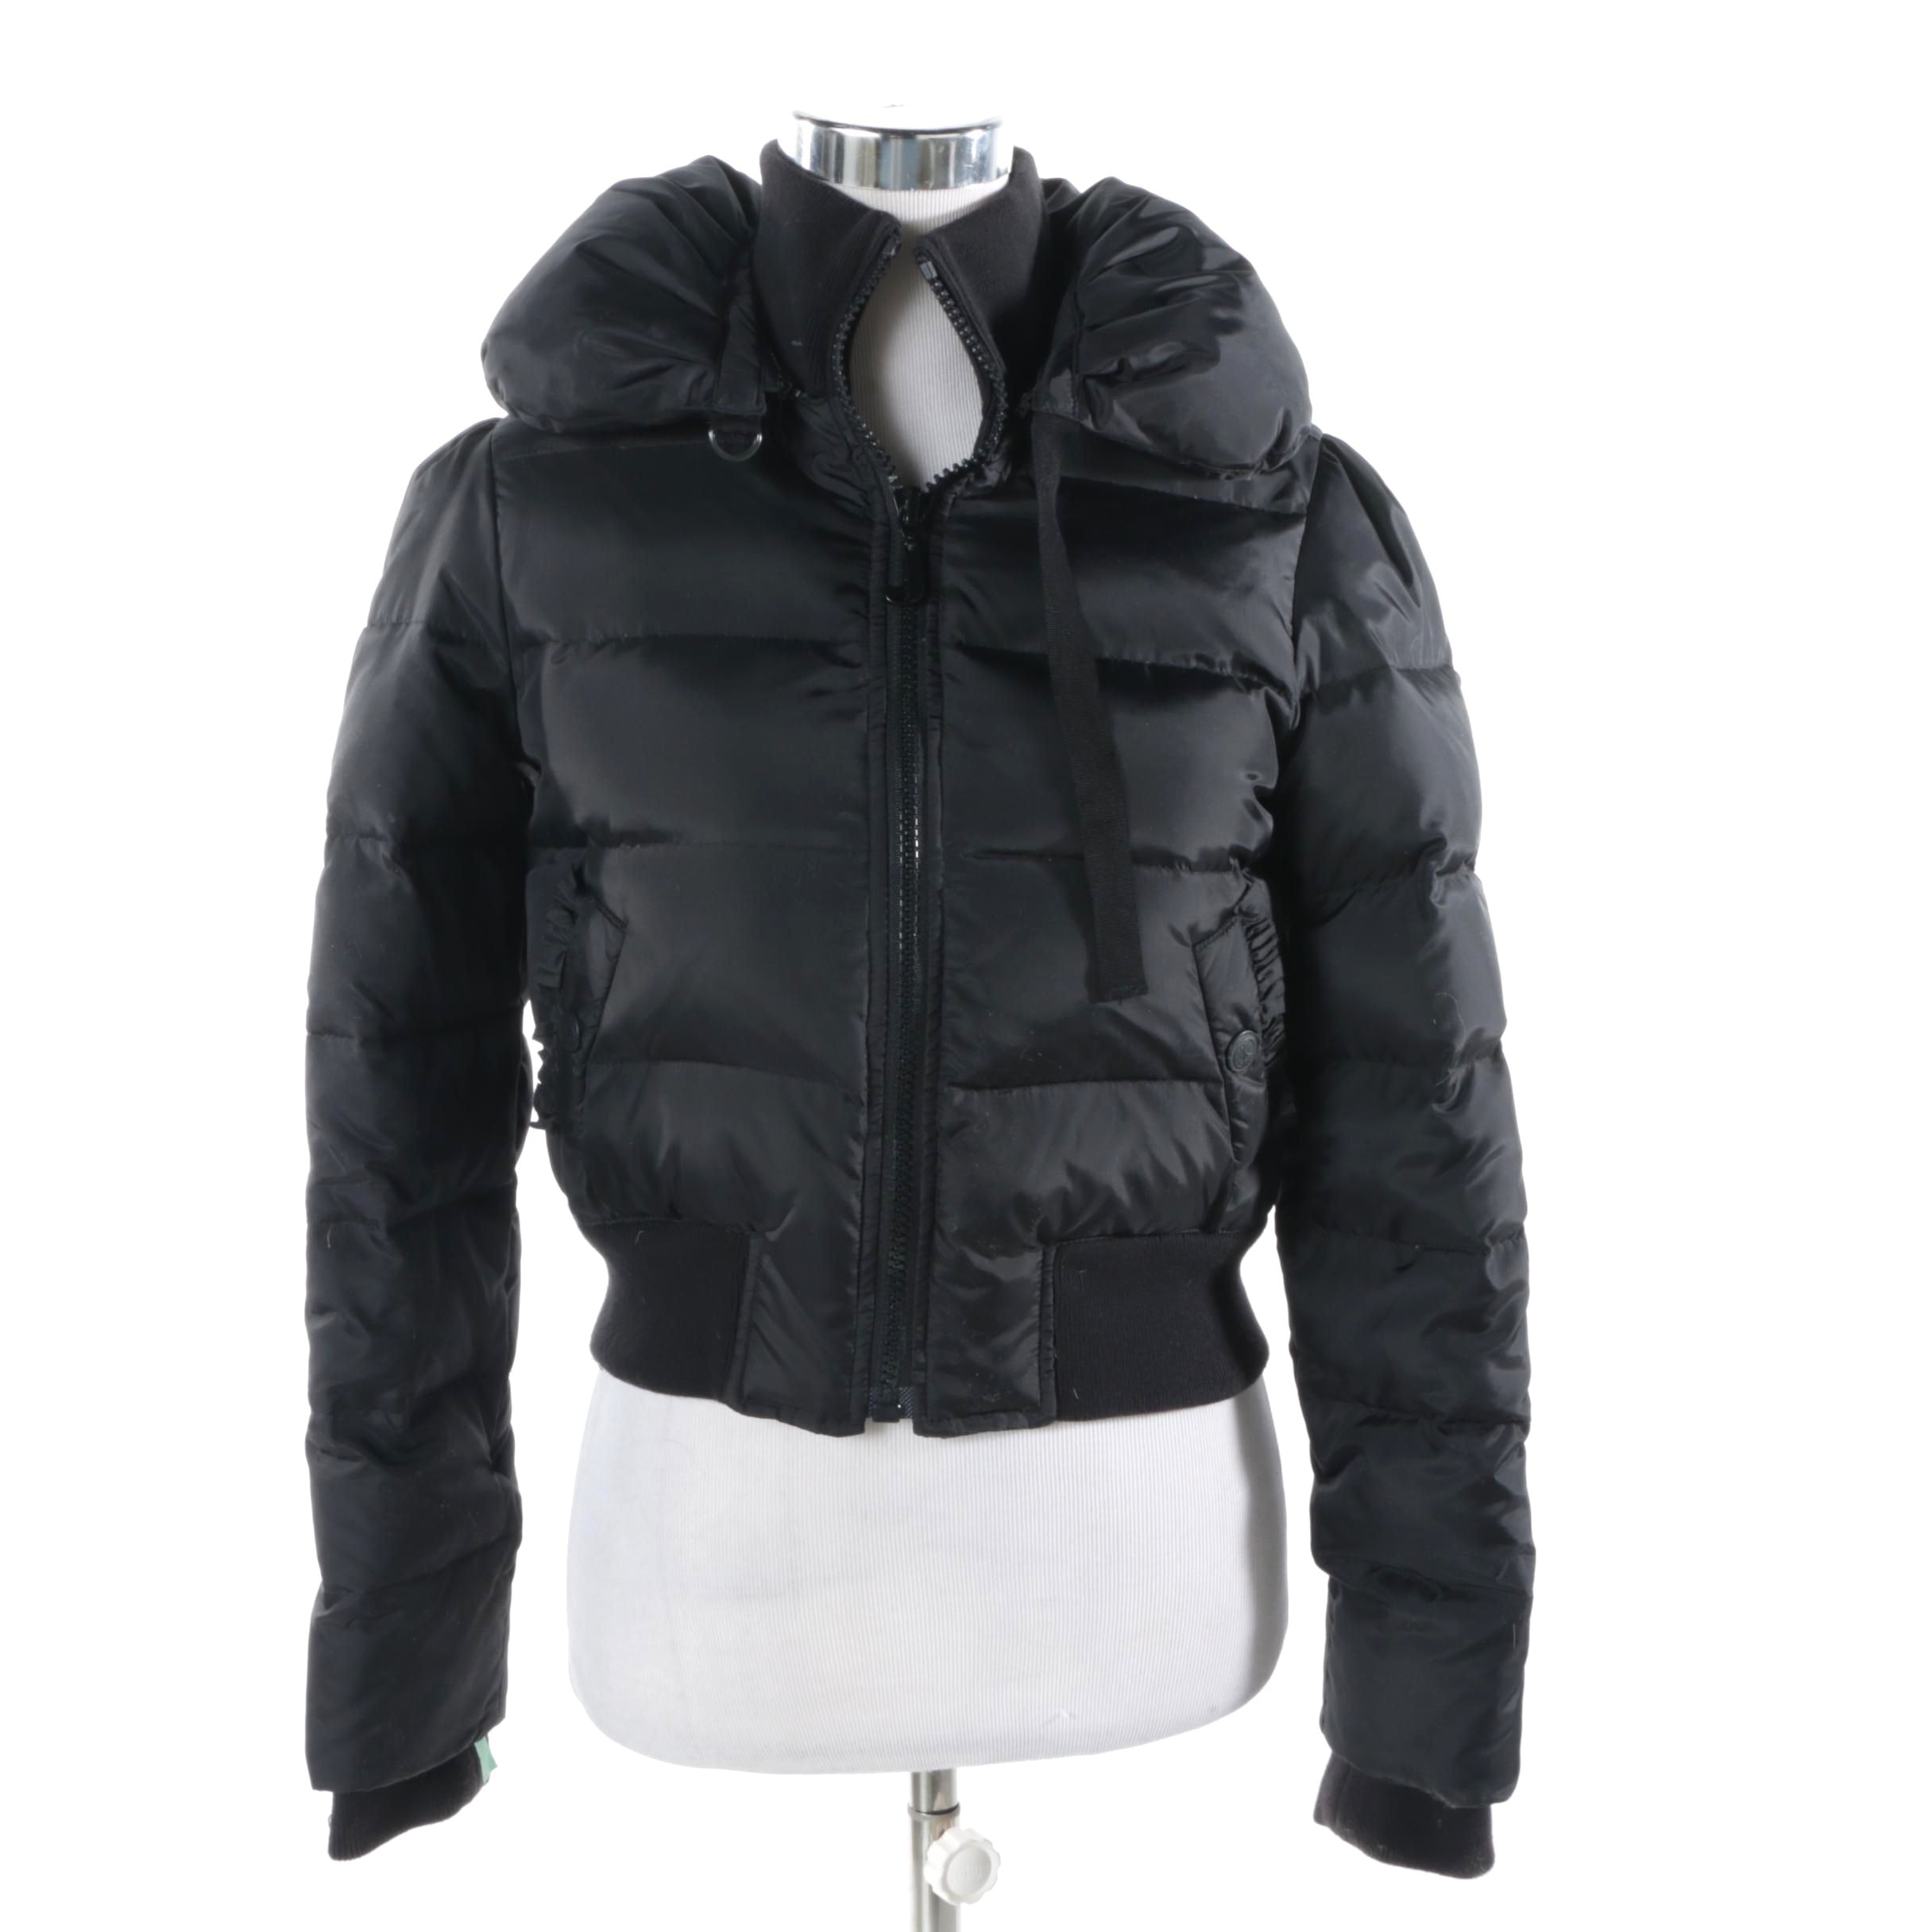 Women's Juicy Couture Black Puffer Jacket